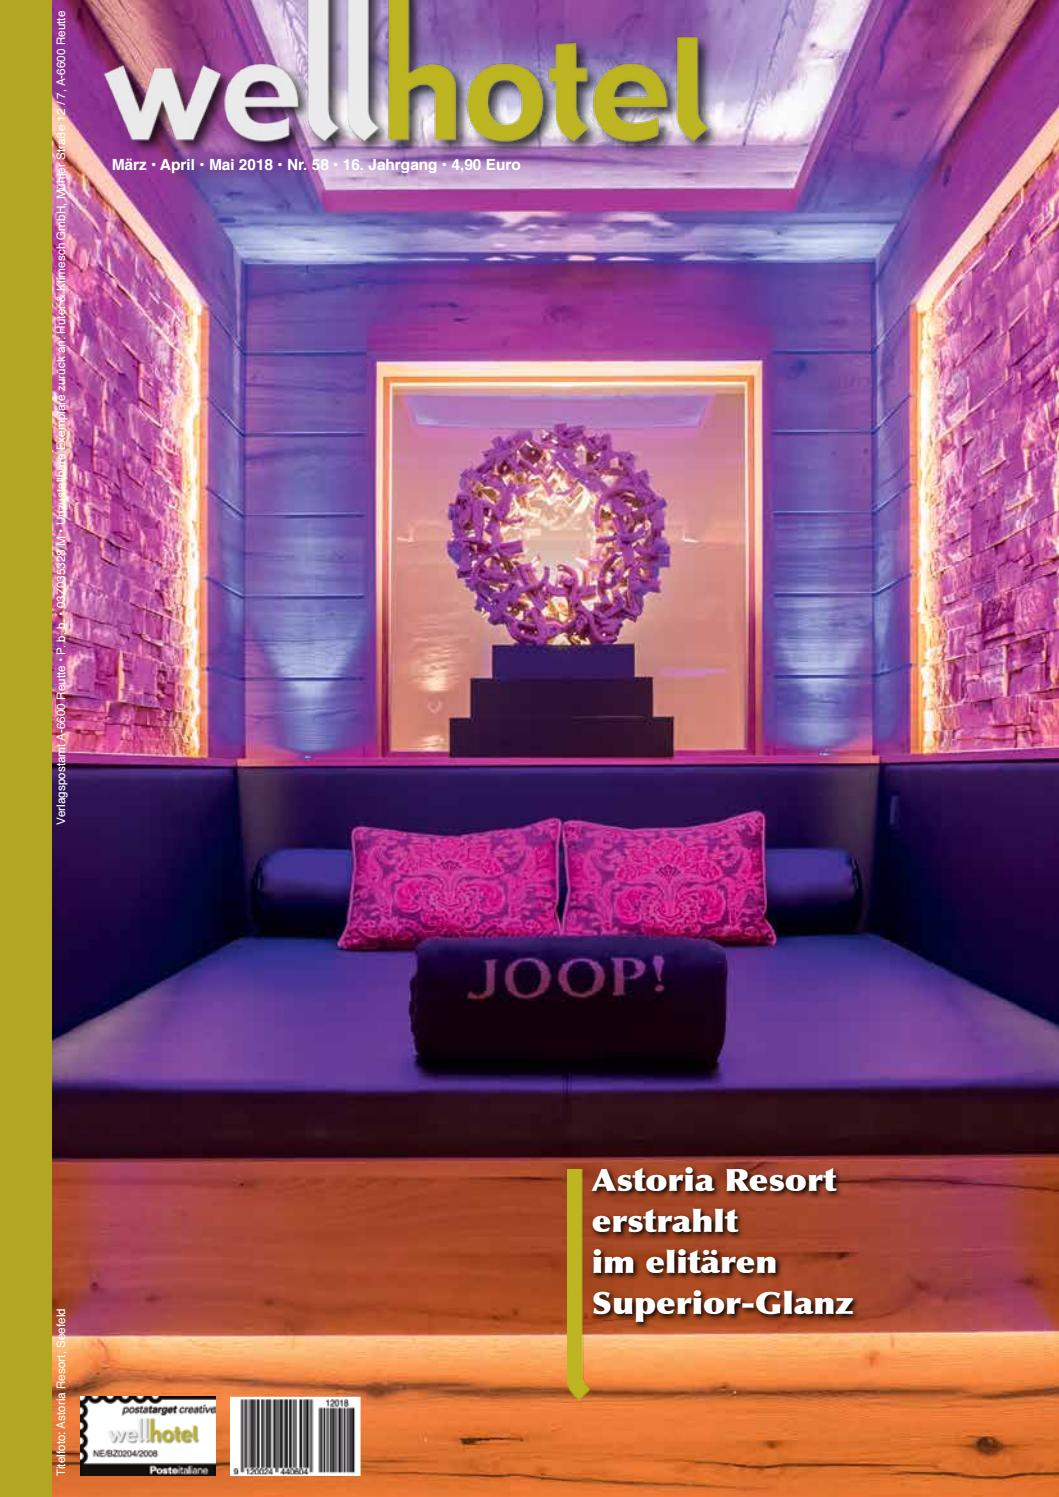 Wellhotel 2018 1 By Wellhotel Issuu